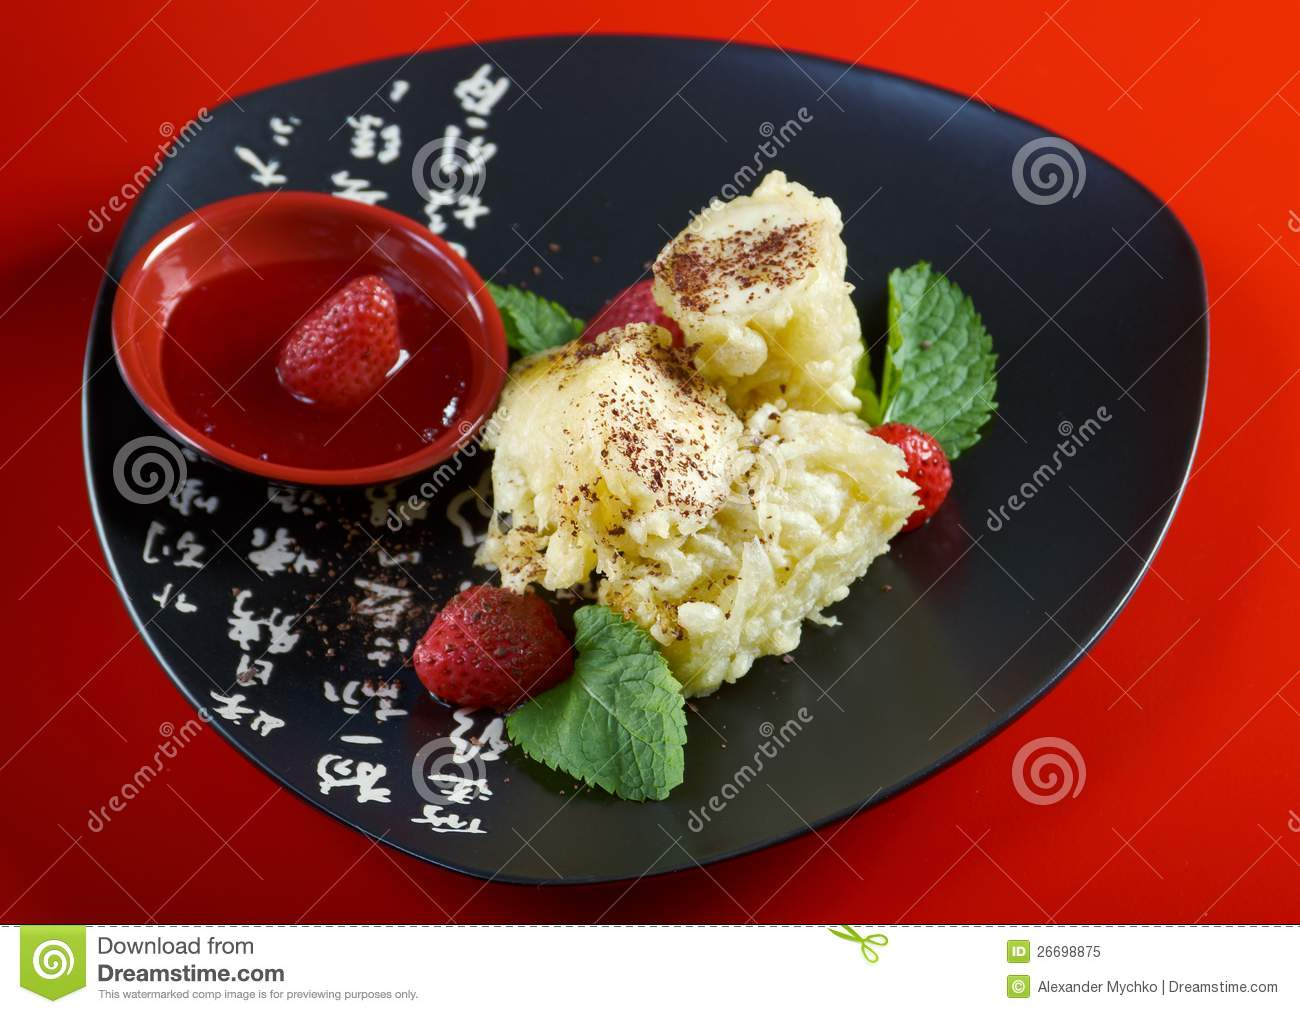 Dessert with banana royalty free stock photo image for Asian cuisine dessert